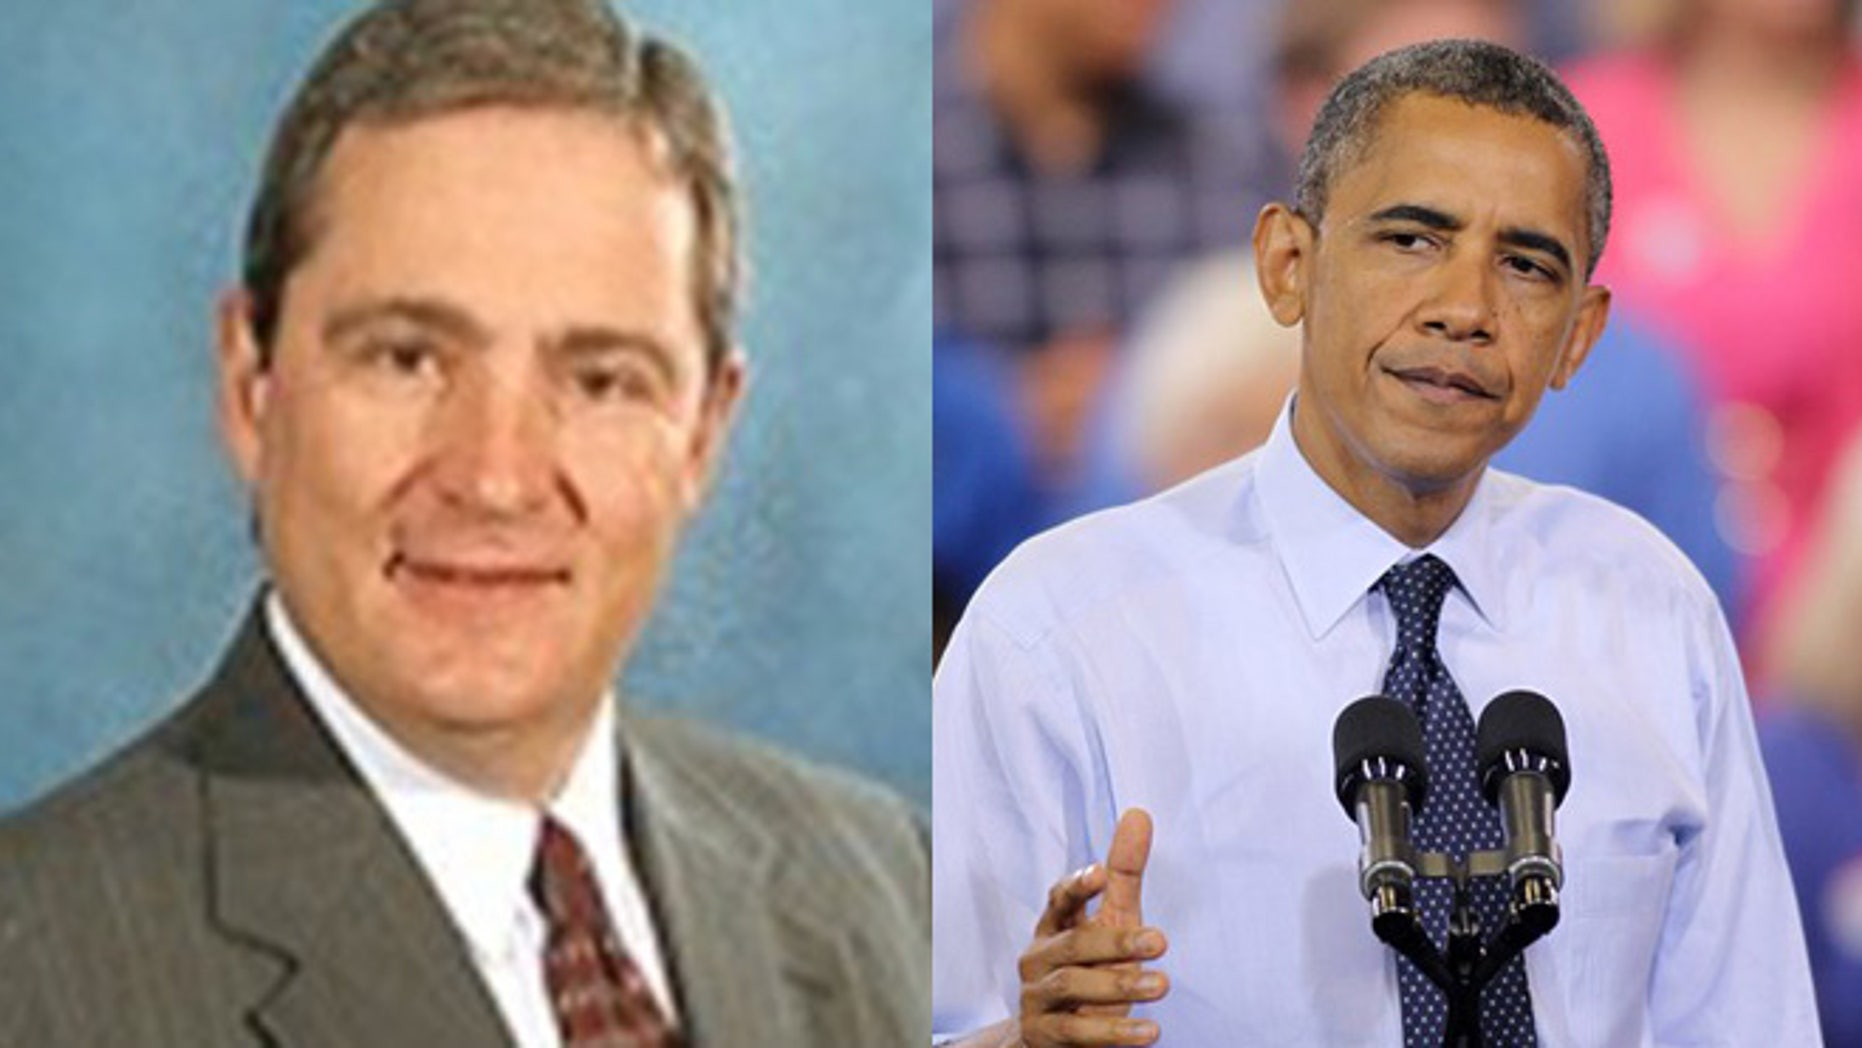 Shown here are Lubbock County Judge Tom Head and President Obama.